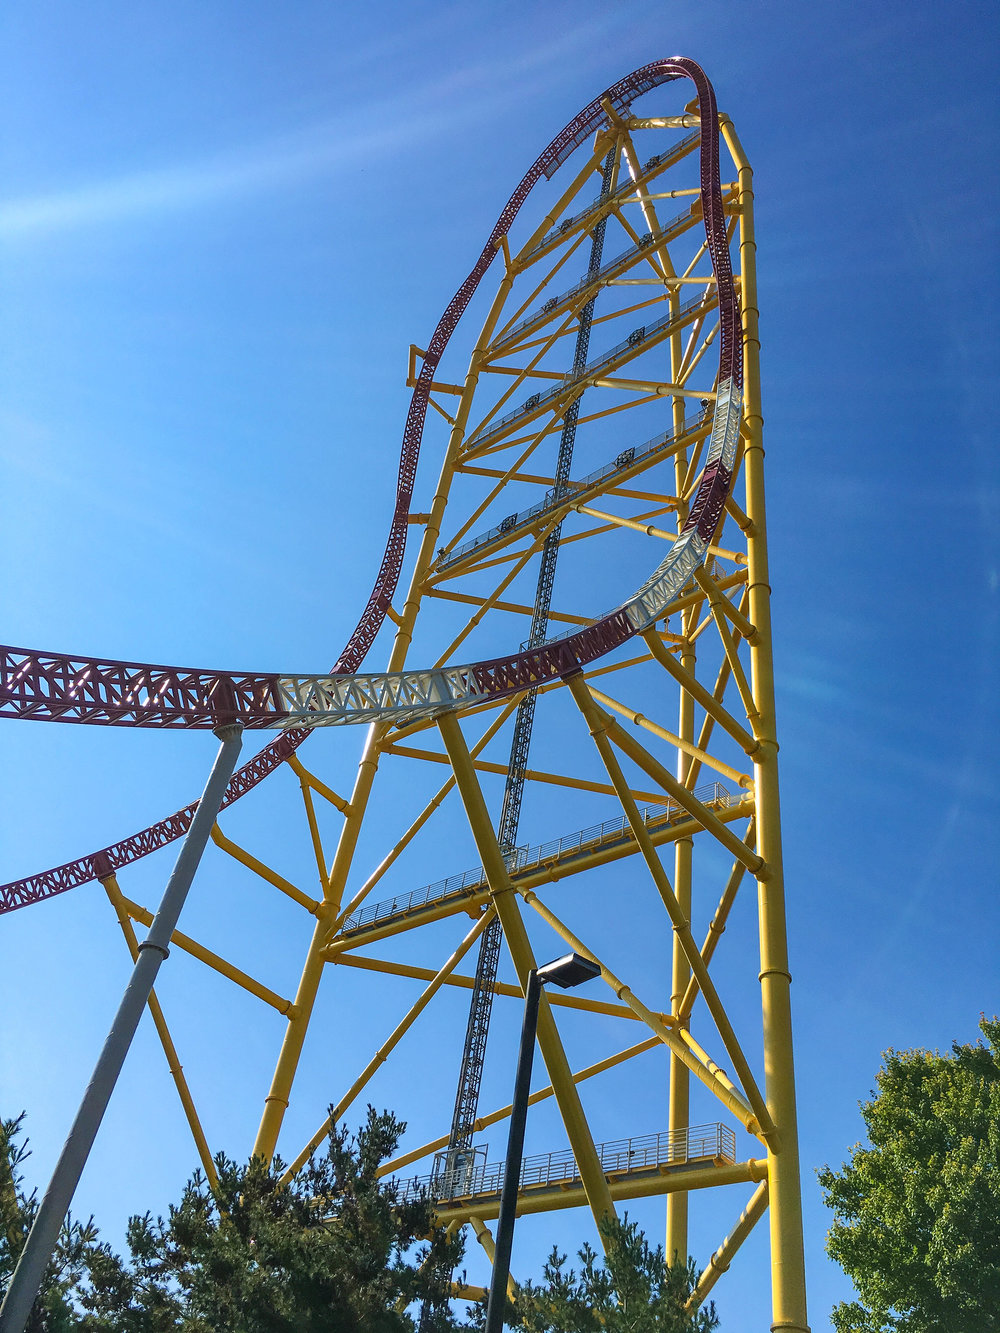 Top Thrill Dragster: Over 420 feet high